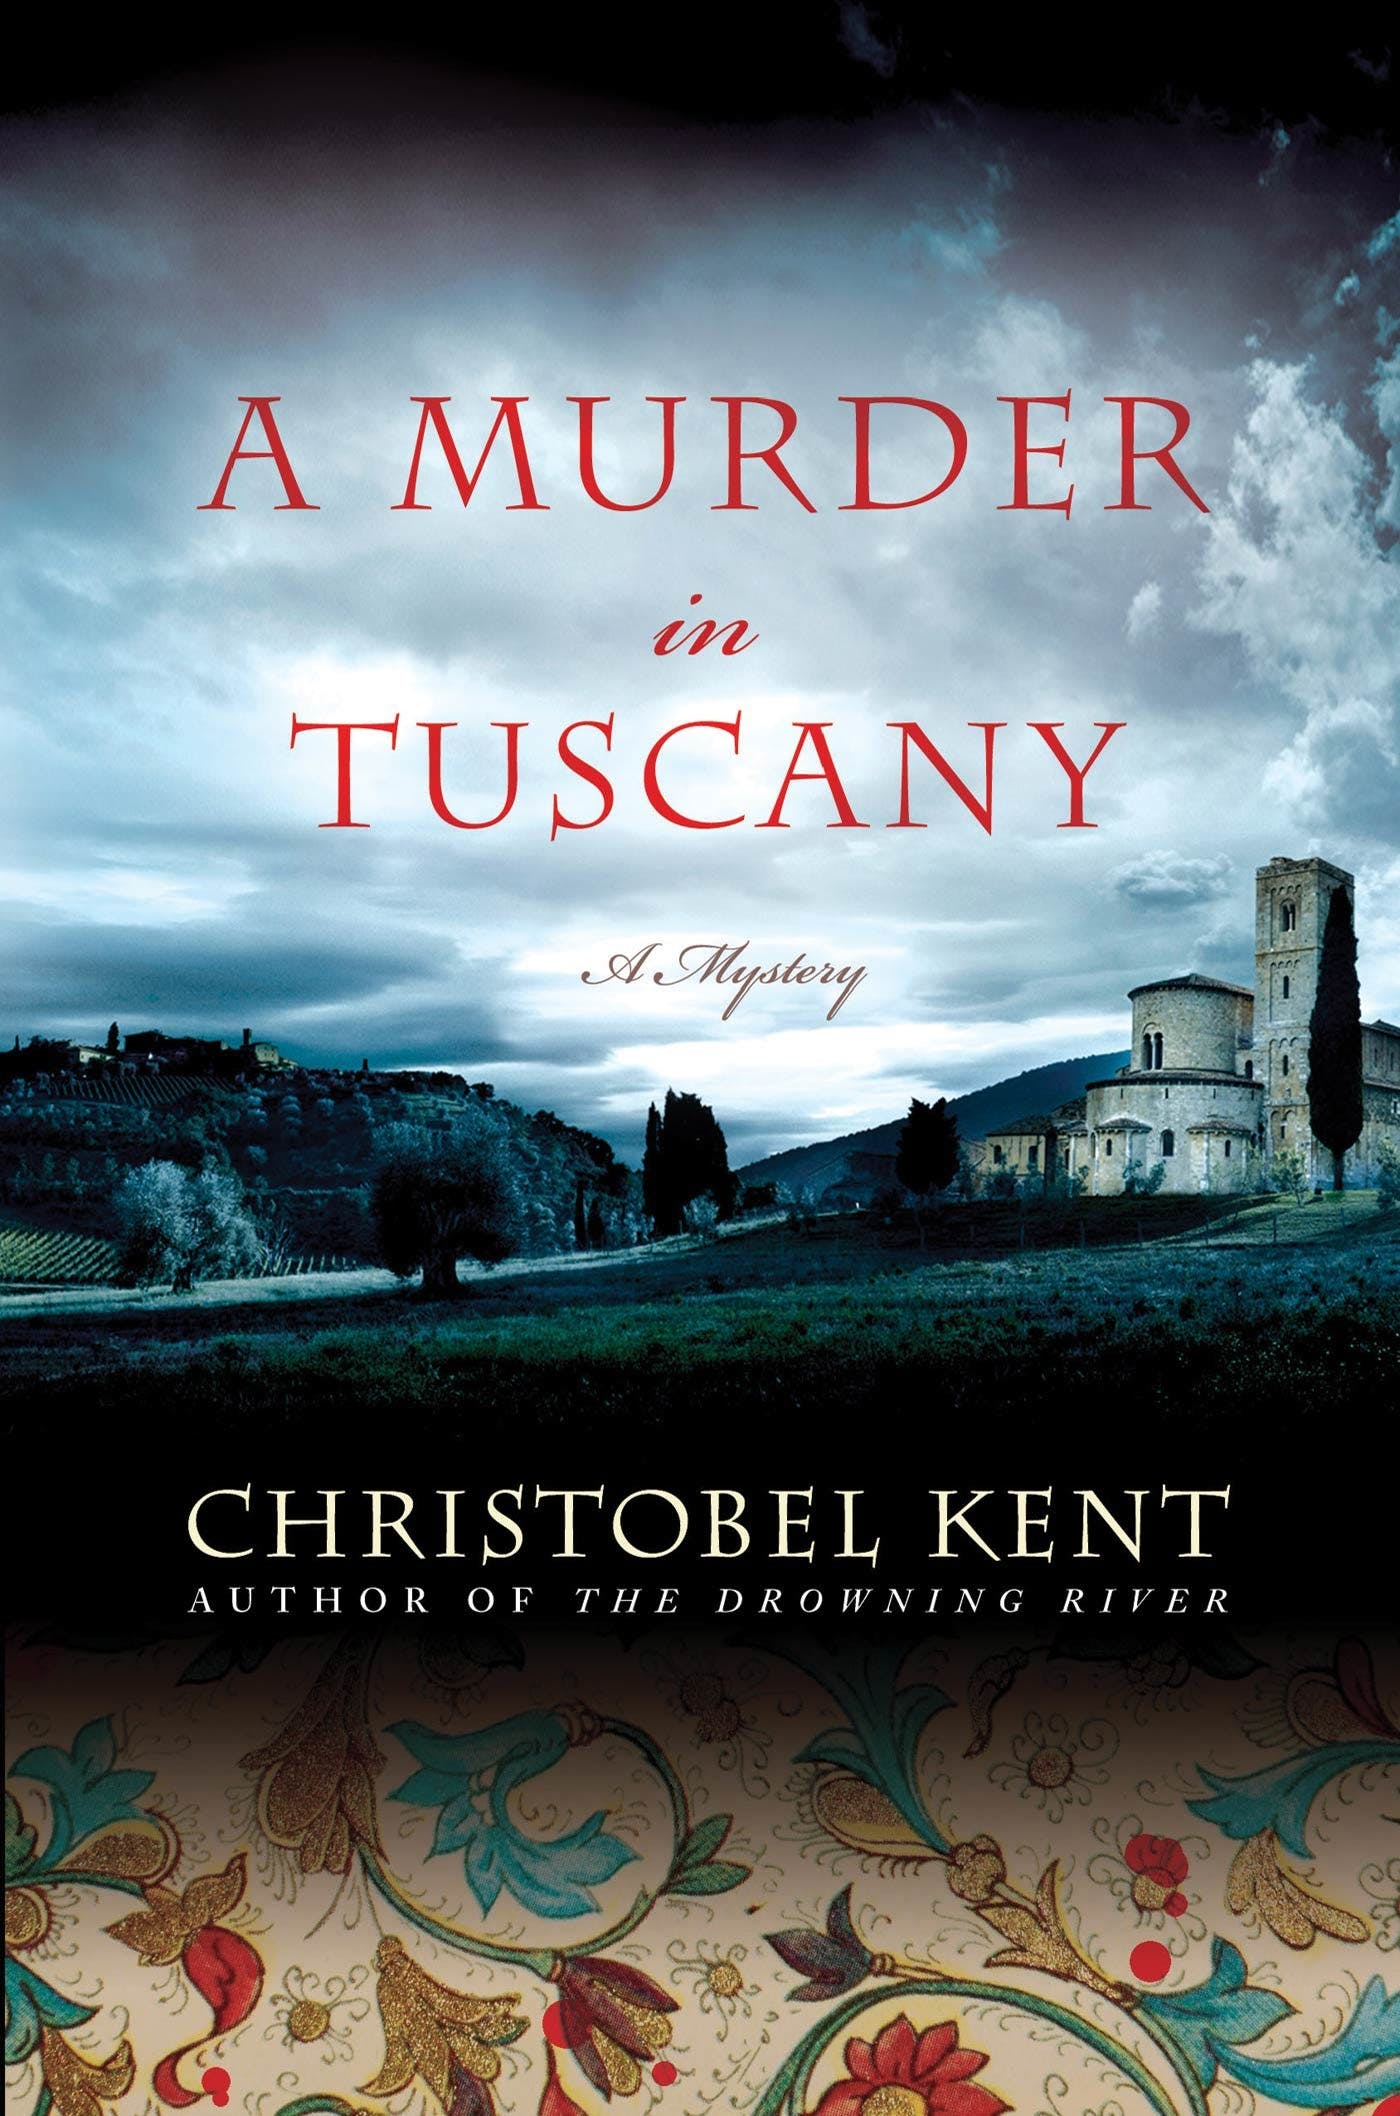 Image of A Murder in Tuscany